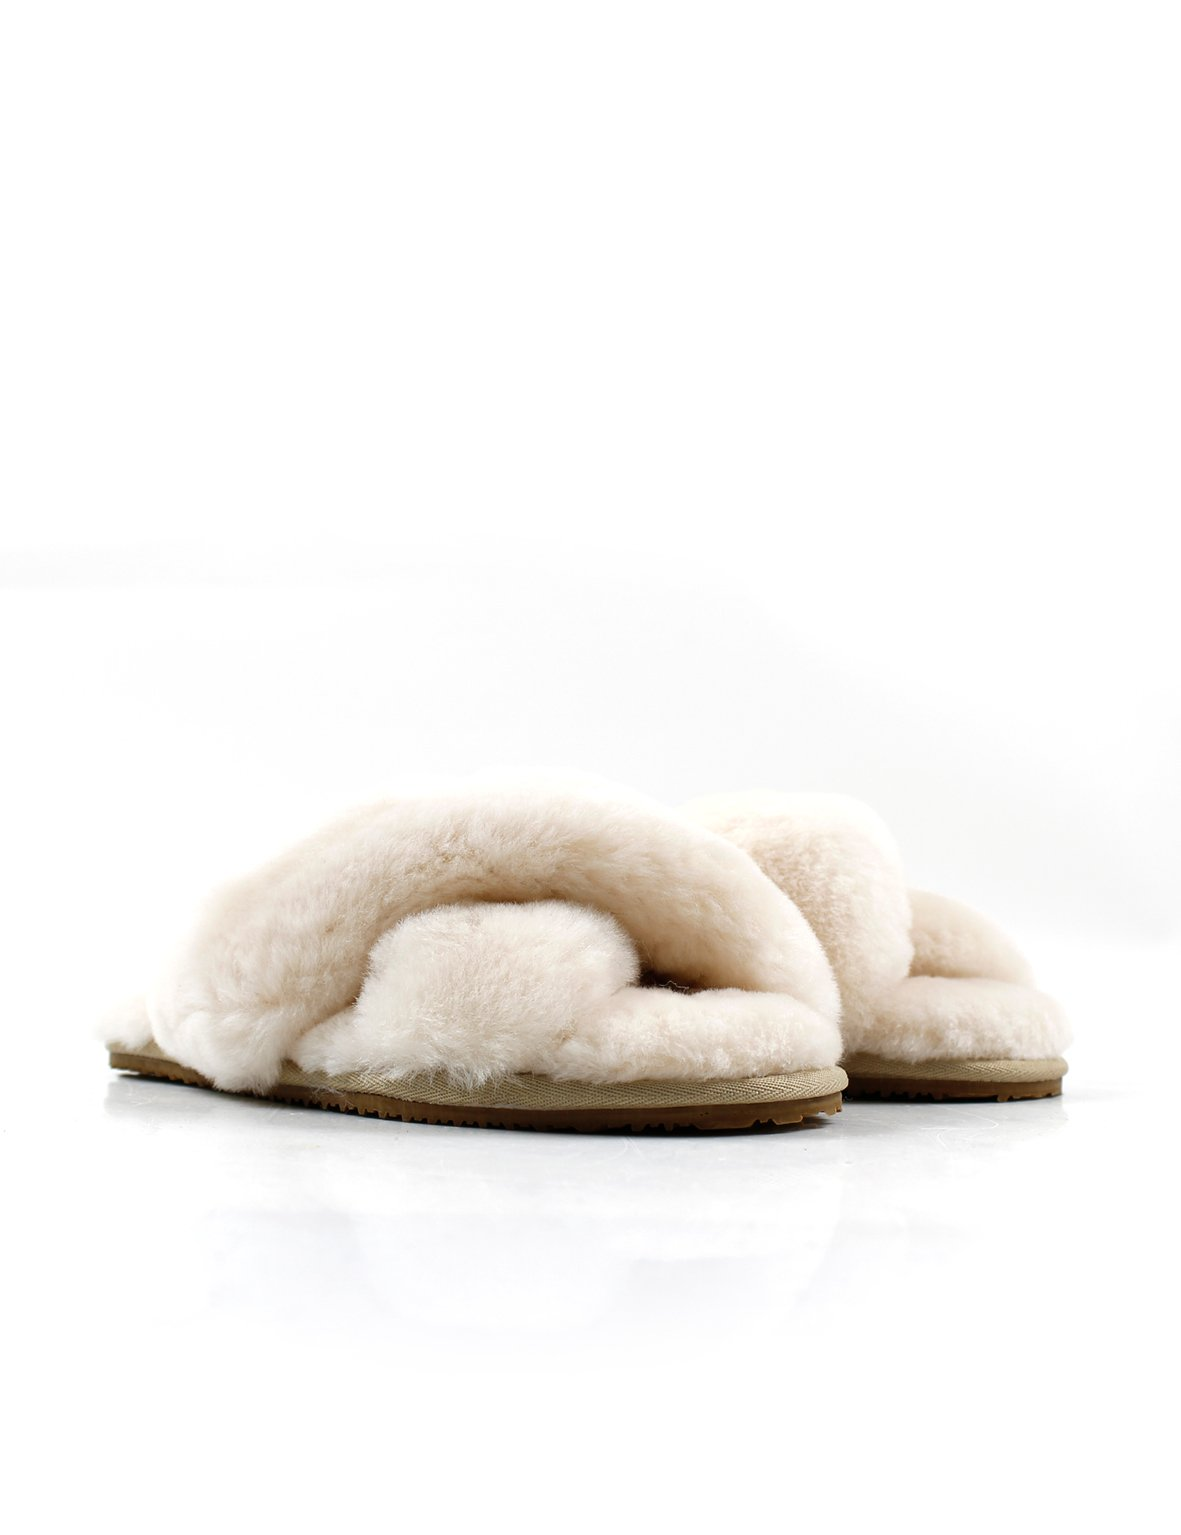 Summer Supply Ltd General La Tribe | Exclusive Cross Over Sheepy Slipper - Ivory